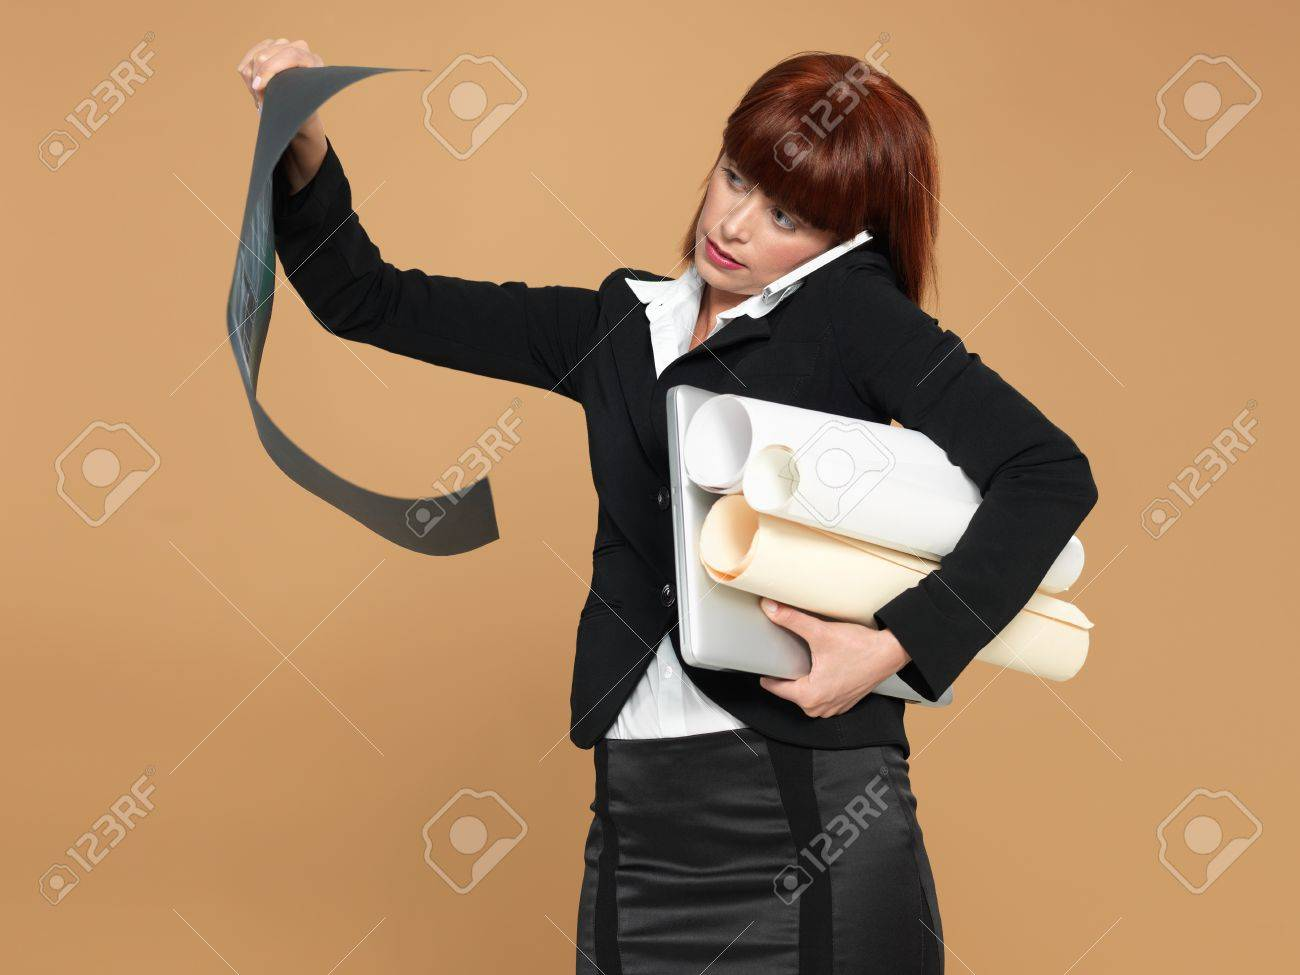 portrait of a bussy, young woman architect, holding a laptop and a blueprint, talking on the telephone, on beige background Stock Photo - 13239358